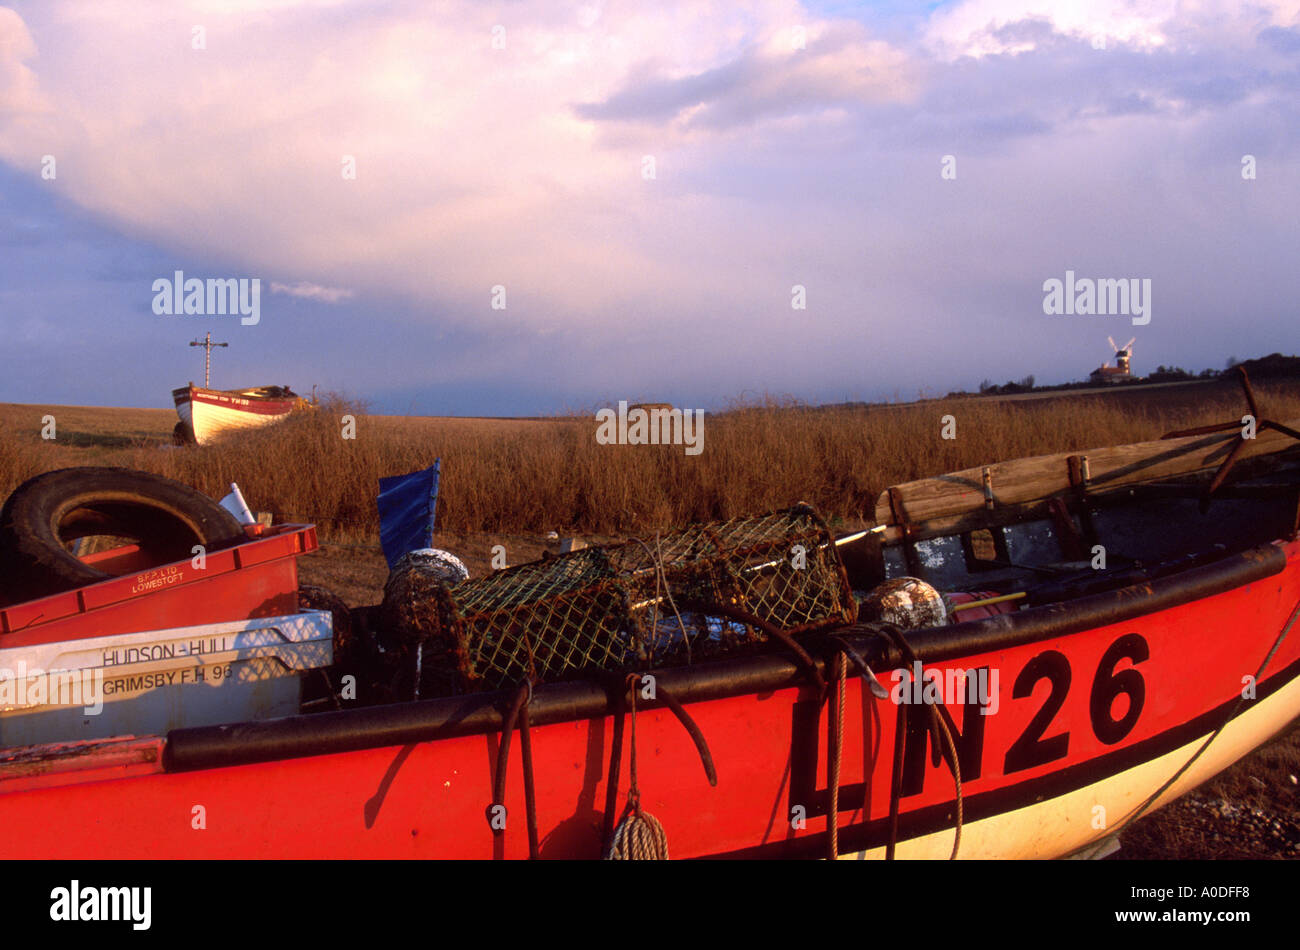 two crab boats a shore at Weybourne North Norfolk NORFOLK EAST ANGLIA ENGLAND UK Stock Photo